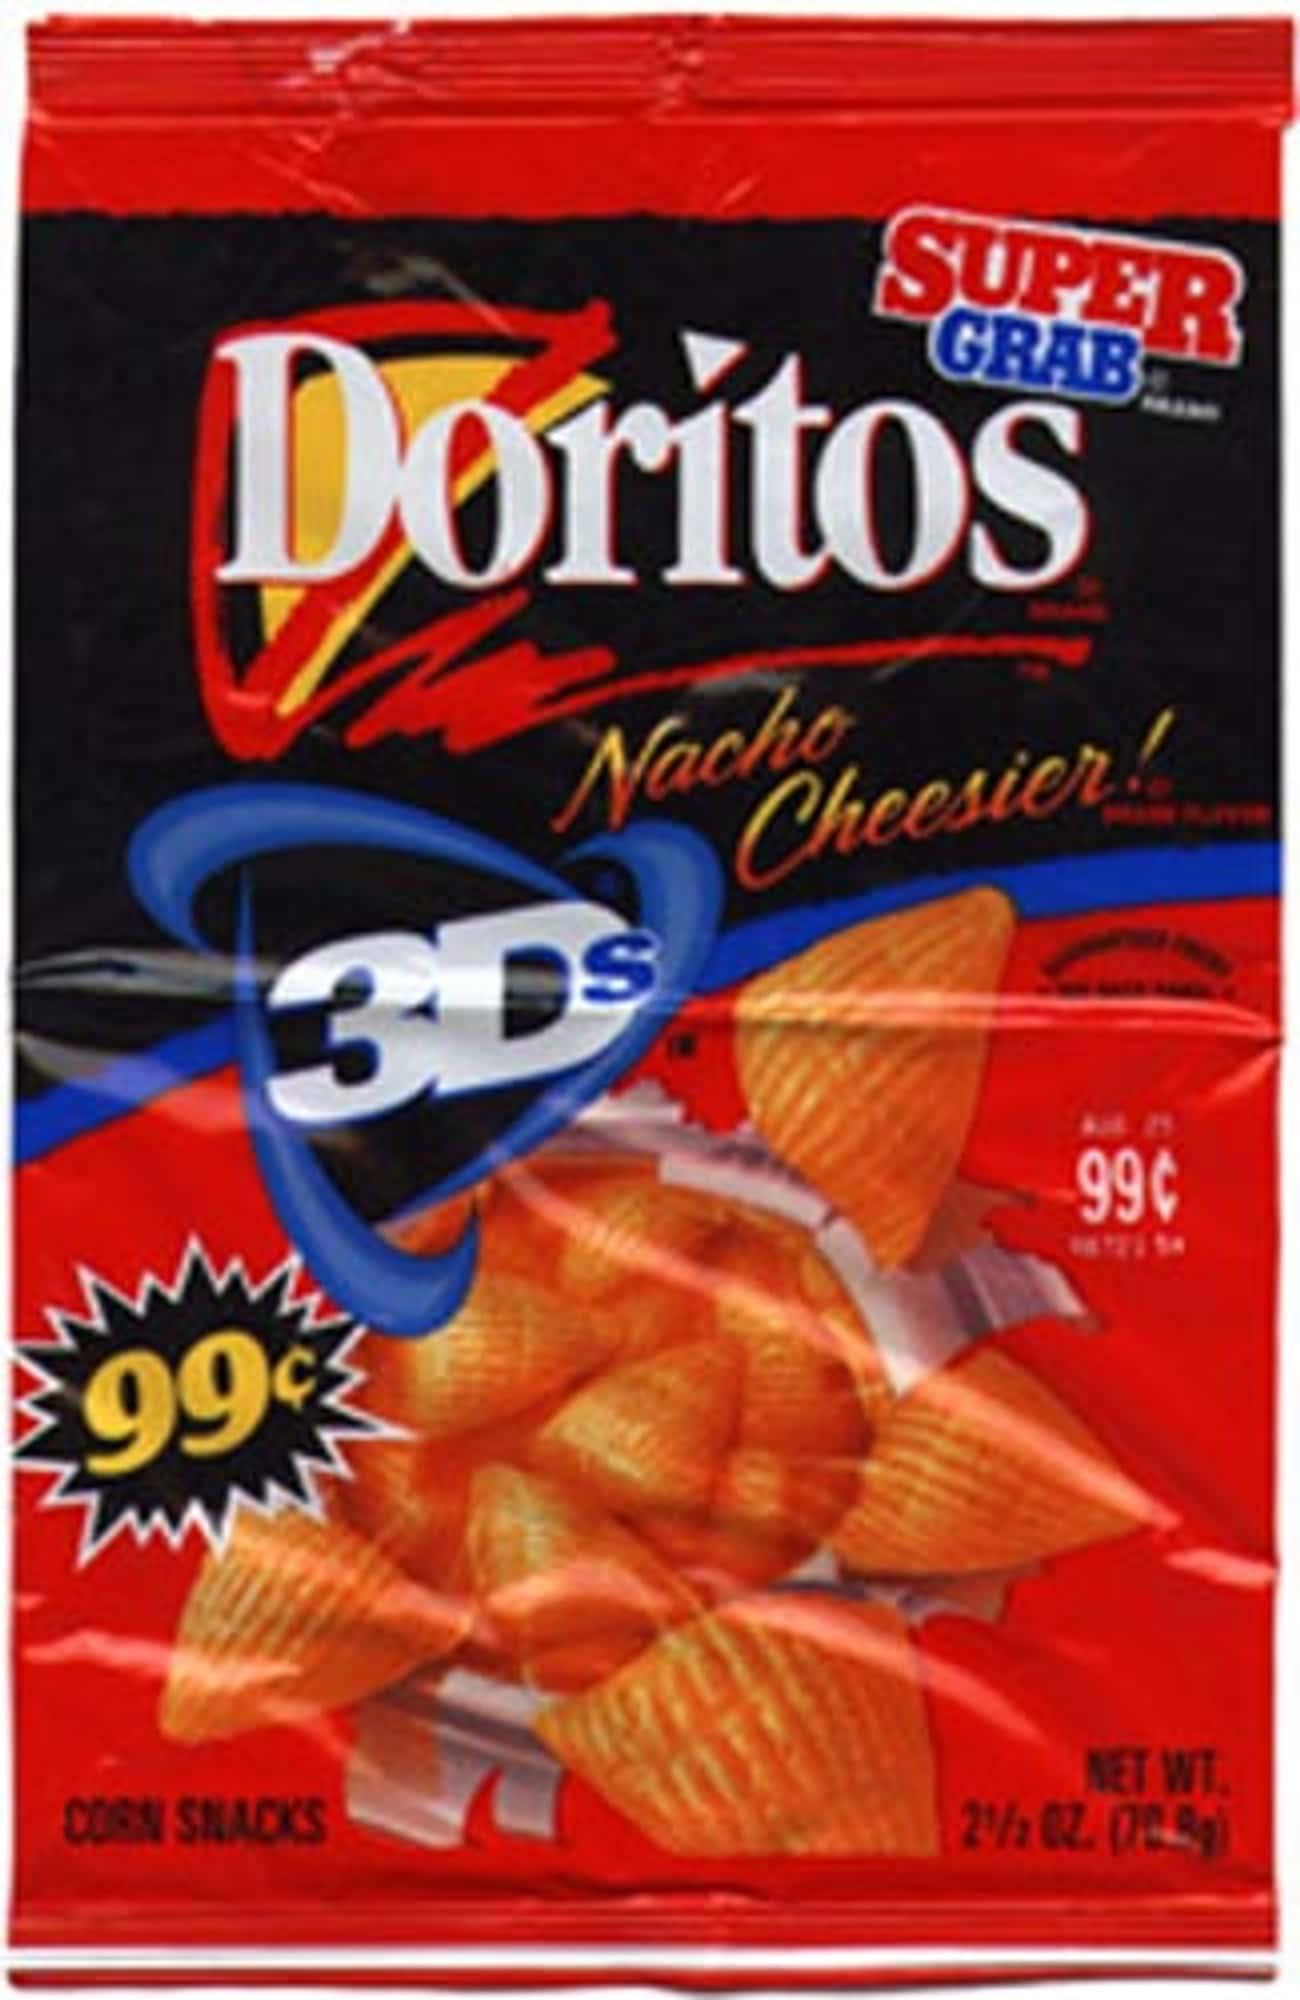 Doritos 3Ds is listed (or ranked) 3 on the list The Greatest Discontinued '90s Foods And Beverages